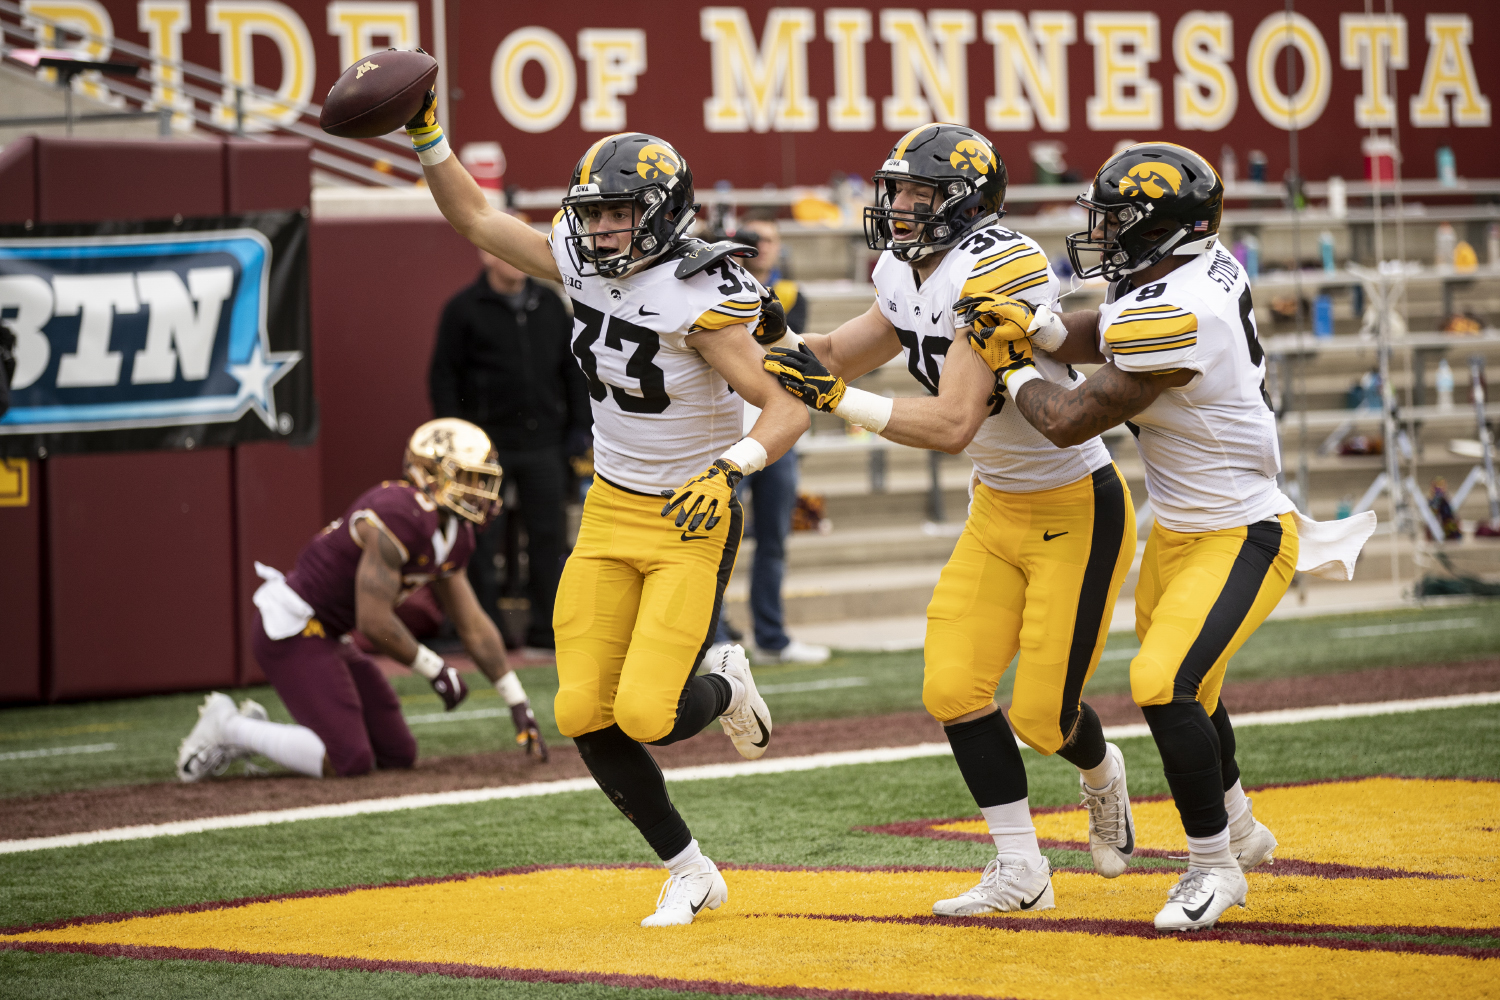 Iowa cornerback Riley Moss (33) celebrates an interception with teammates Jake Gervase (30) and Geno Stone (8) during Iowa's game against Minnesota at TCF Bank Stadium on Saturday, Oct. 6, 2018. The Hawkeyes defeated the Golden Gophers 48-31.